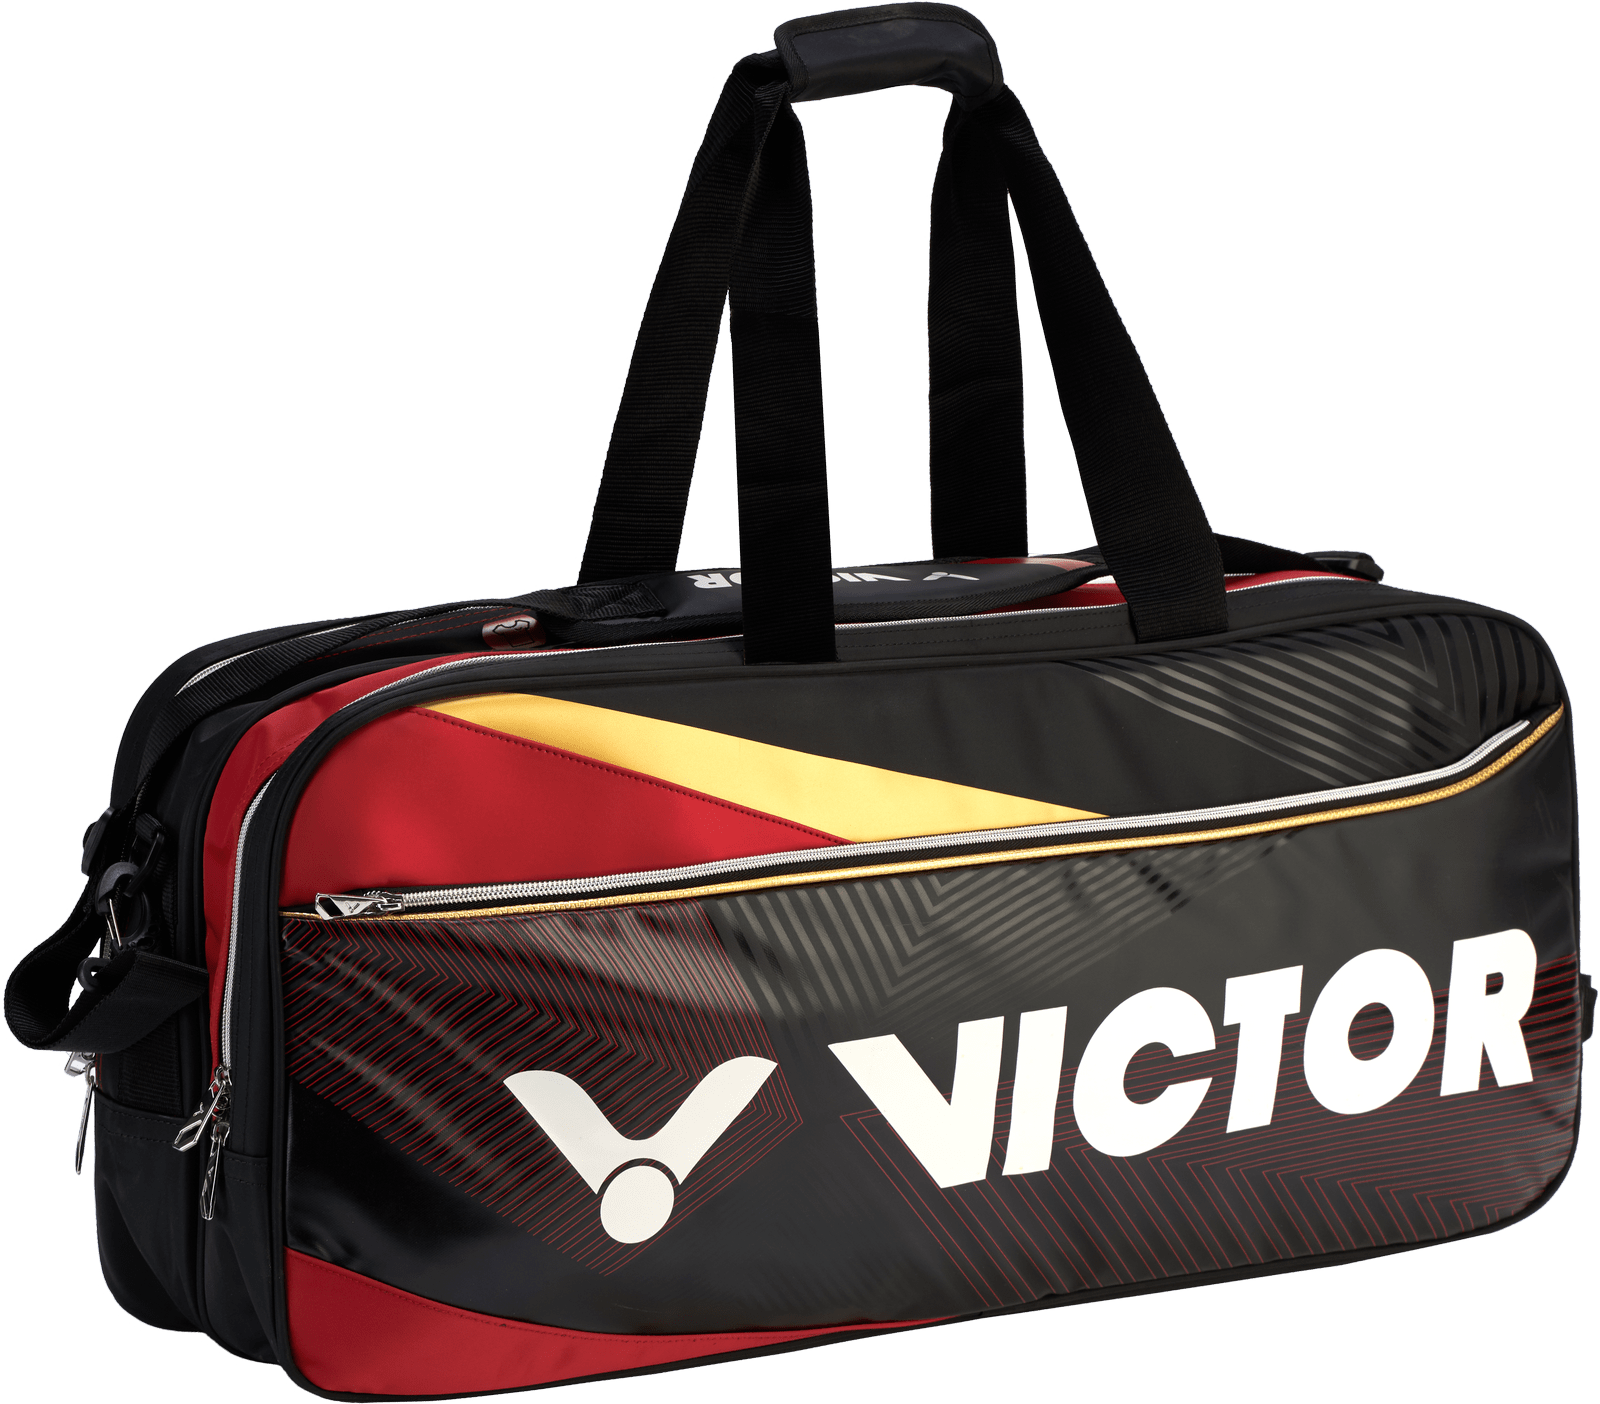 VICTOR Rectangularbag BR9609 CD